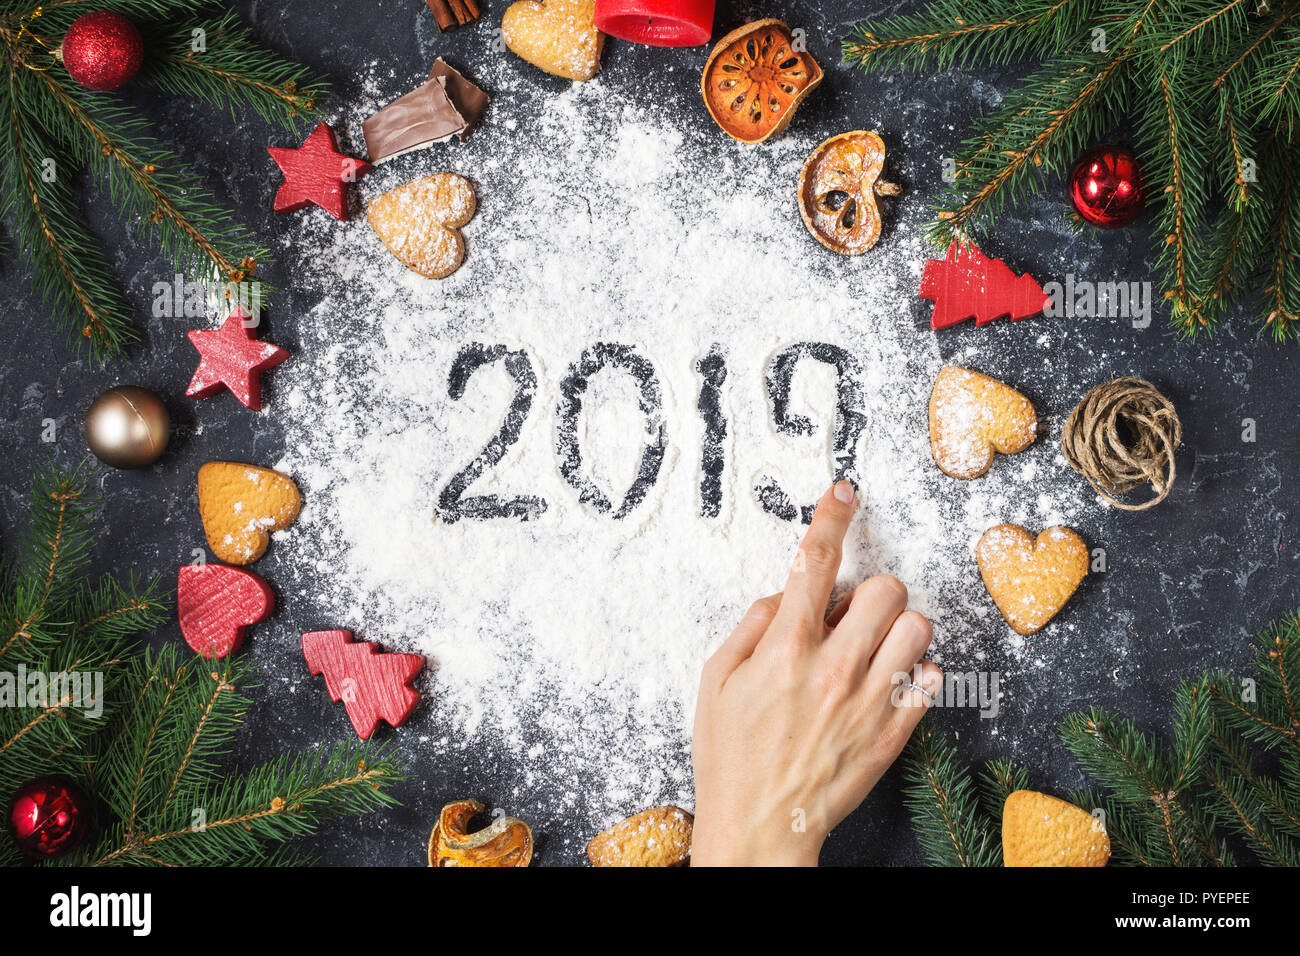 happy new year 2019 written on flour and christmas decorations gingerbread cookies on dark stone background new year greeting card